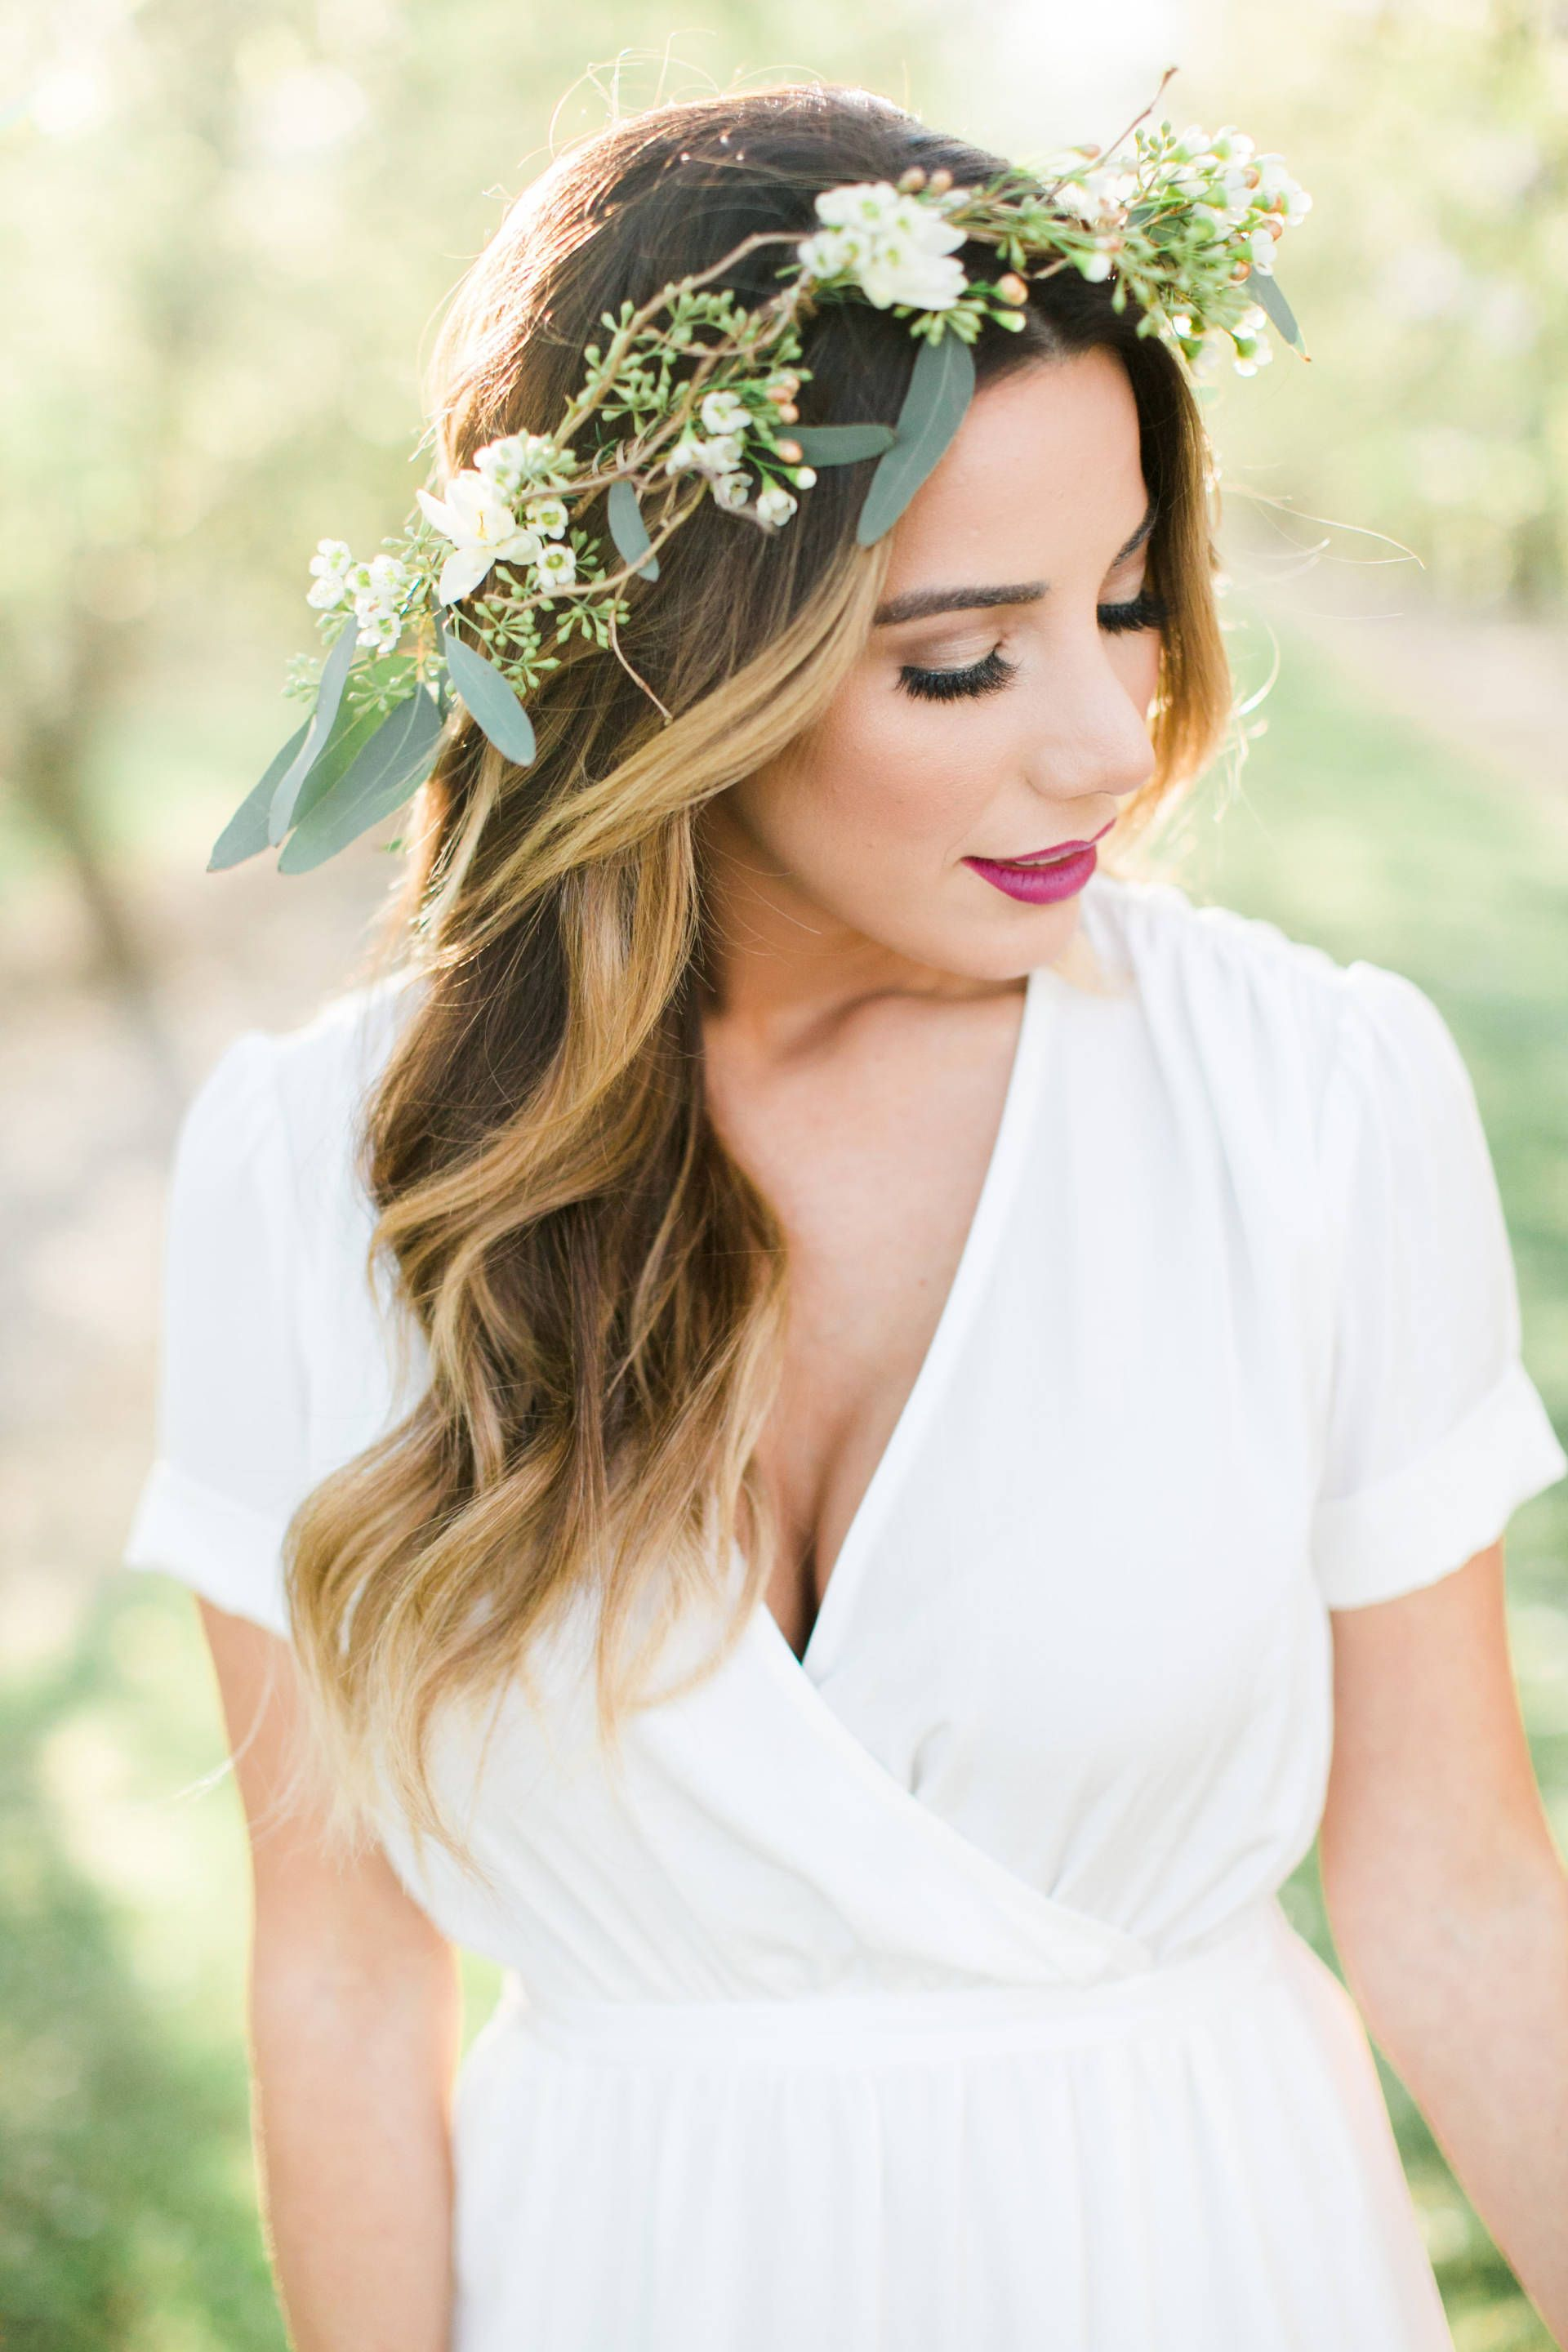 Boho style on fashionborn flower crown boho fashion pinterest boho style on fashionborn flower crown izmirmasajfo